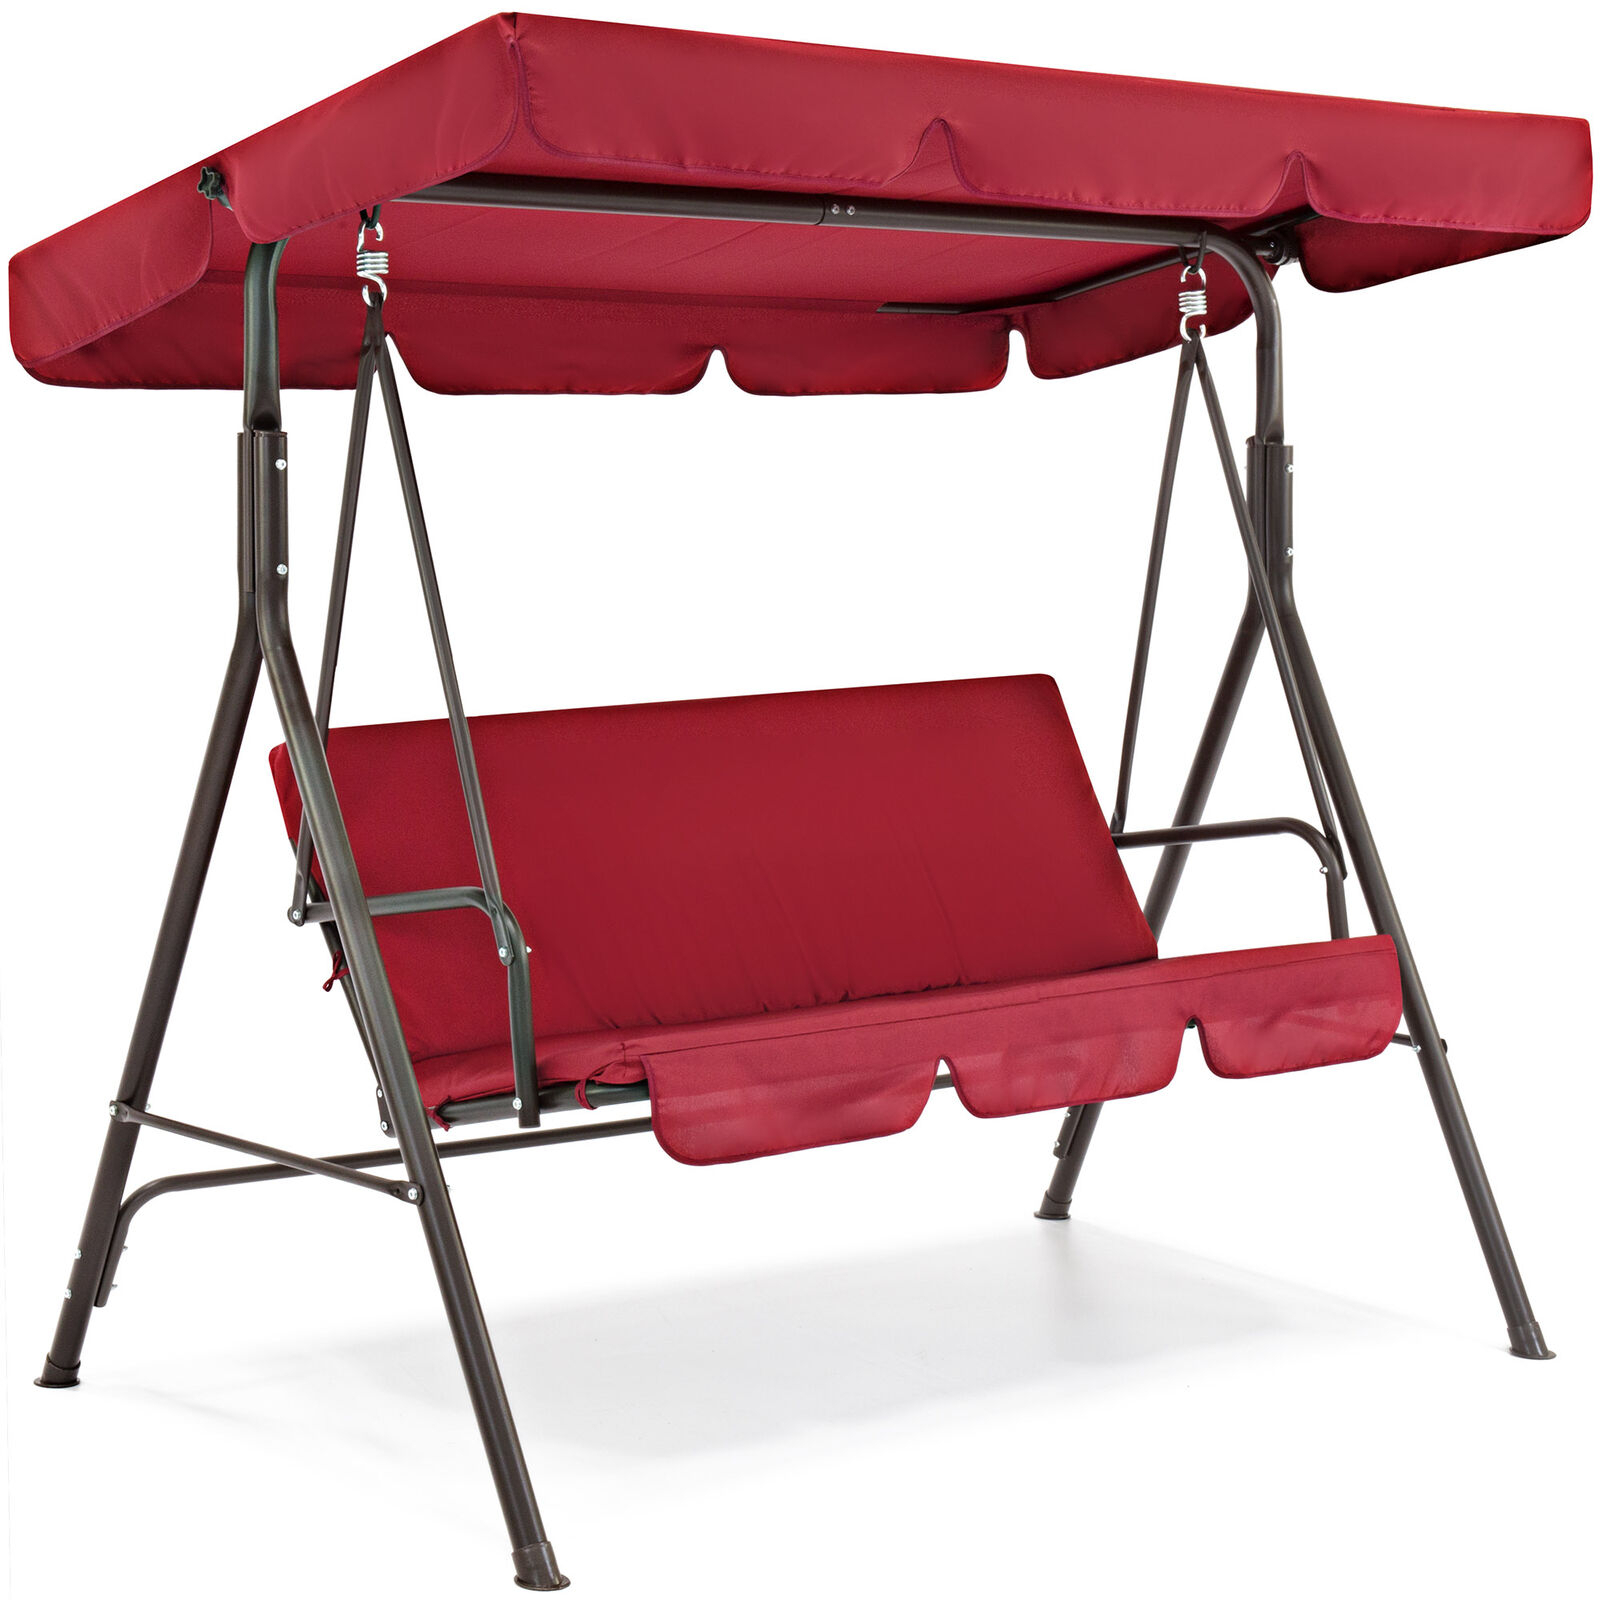 Best Choice Products Outdoor 2 Person Patio Canopy Swing – Burgundy Pertaining To 2 Person Outdoor Convertible Canopy Swing Gliders With Removable Cushions Beige (View 7 of 25)